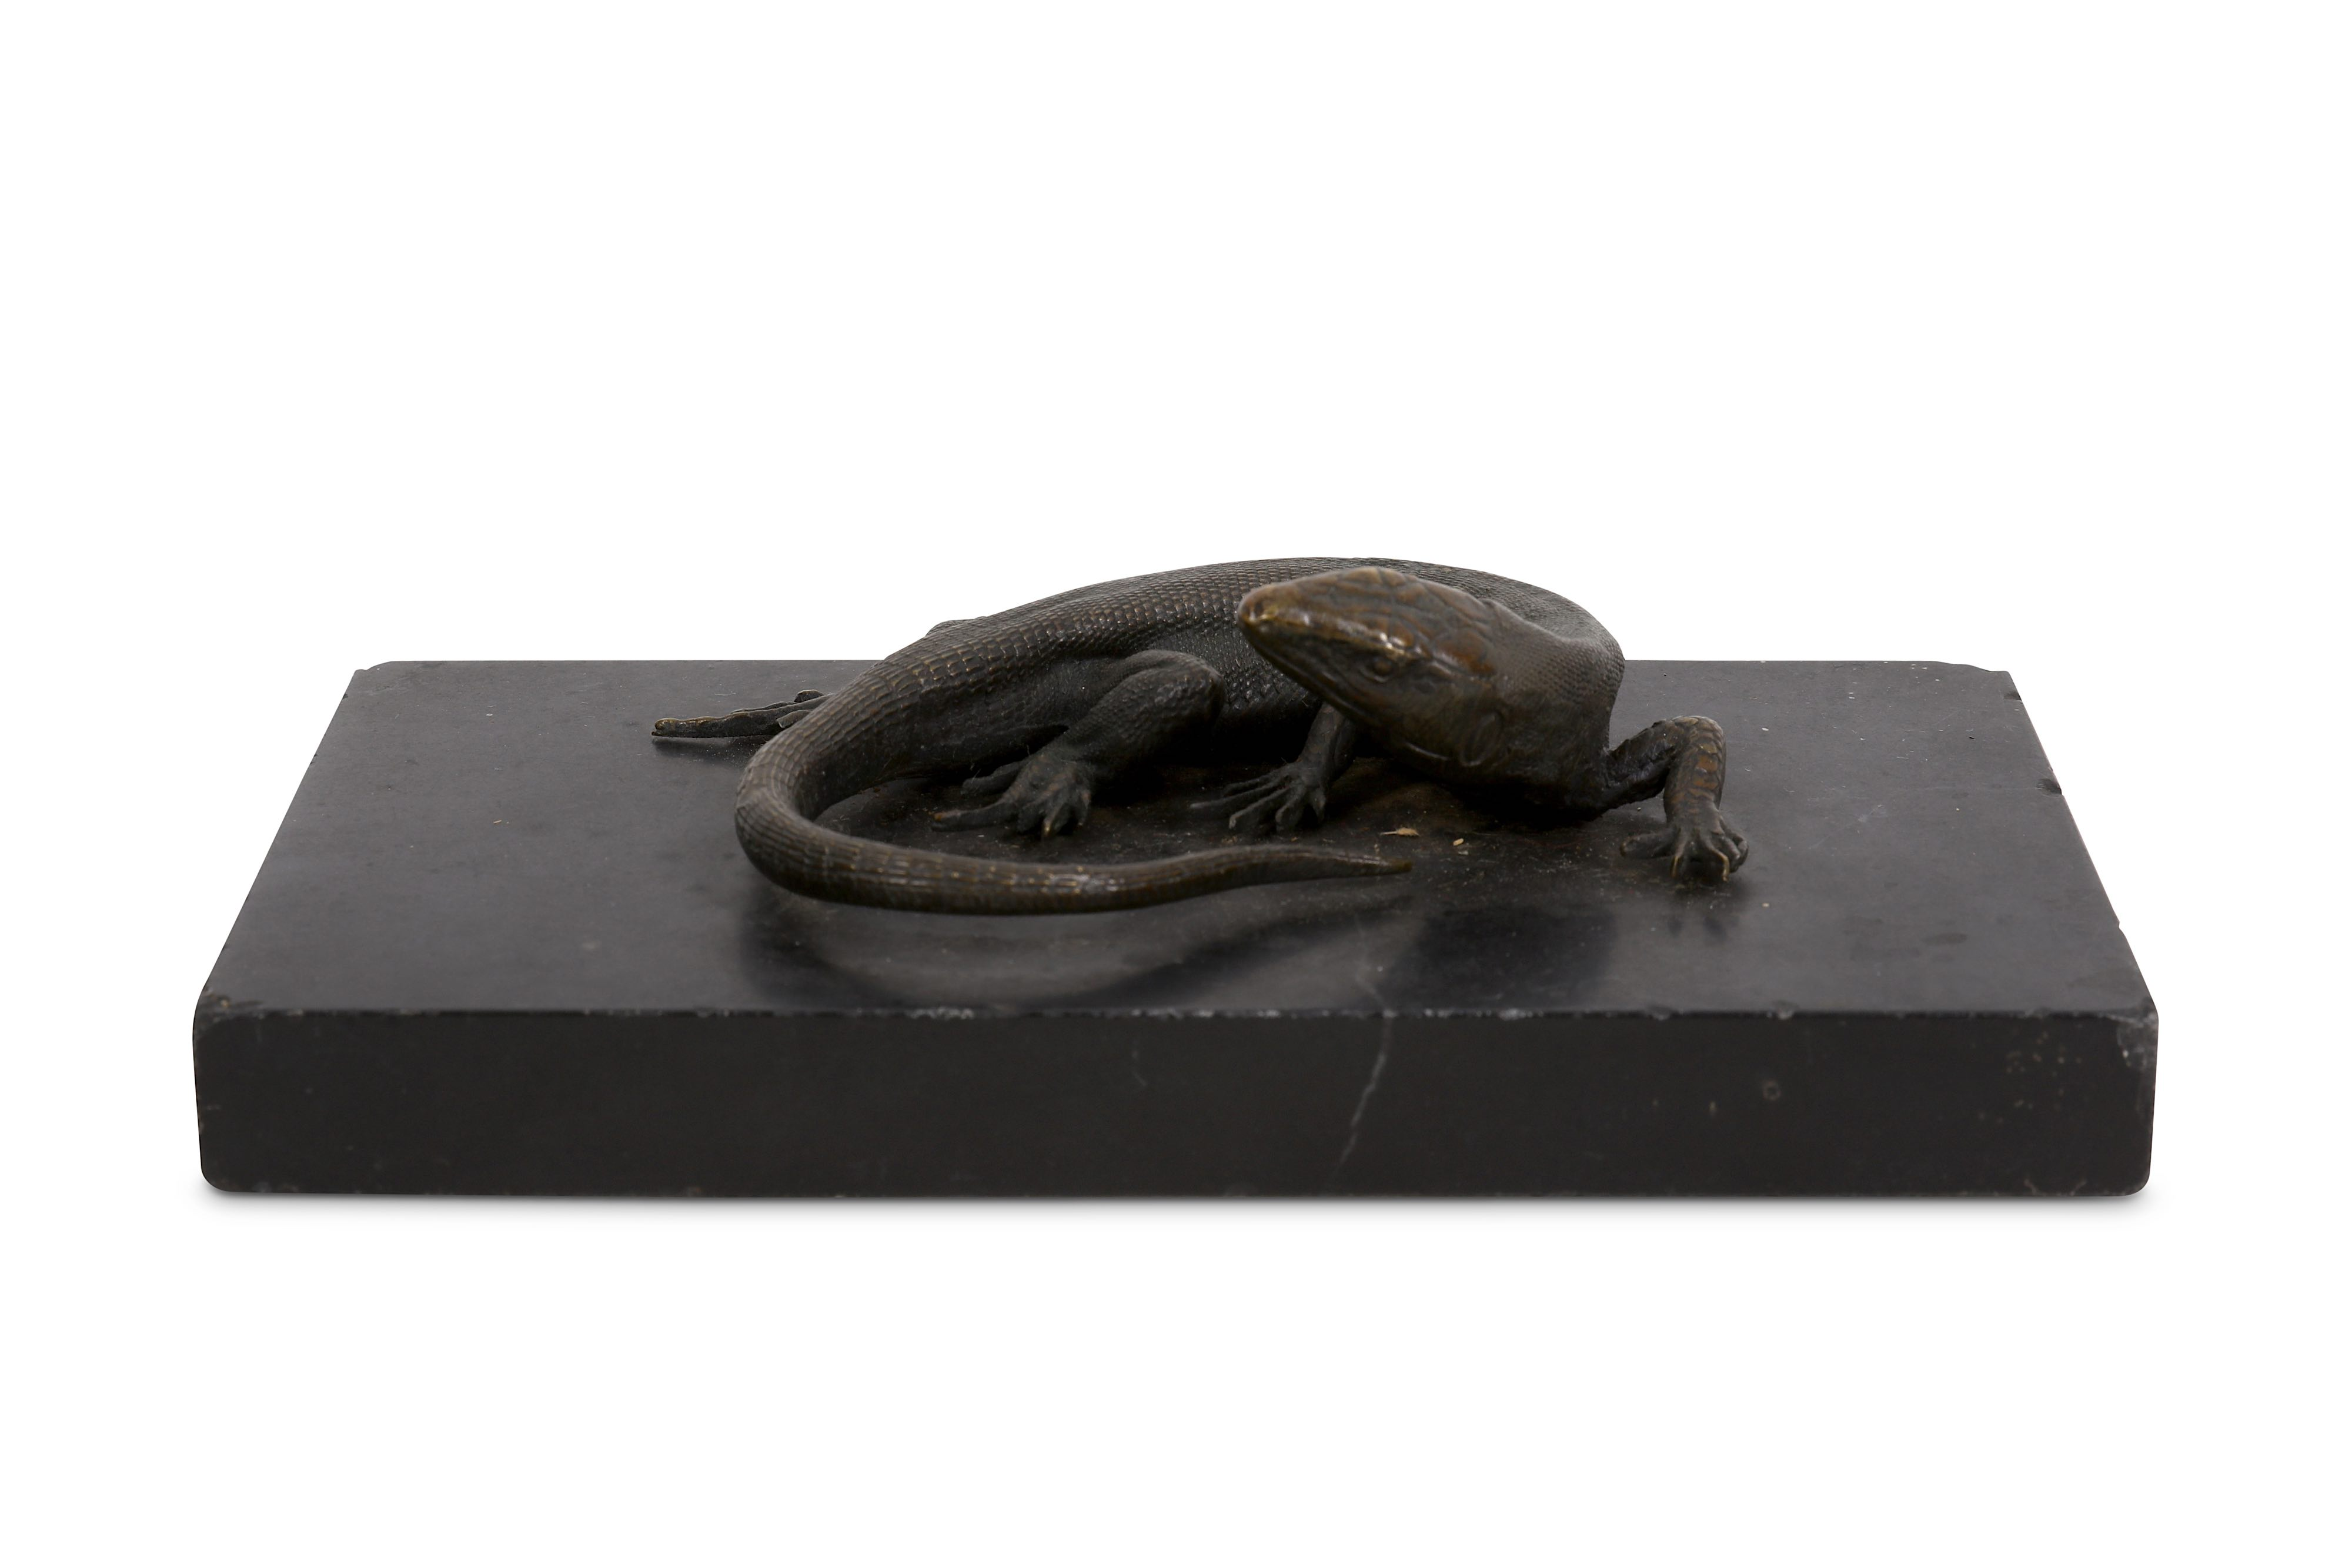 A 19TH CENTURY BRONZE MODEL OF A LIZARD, POSSIBLY A LIFE-CAST